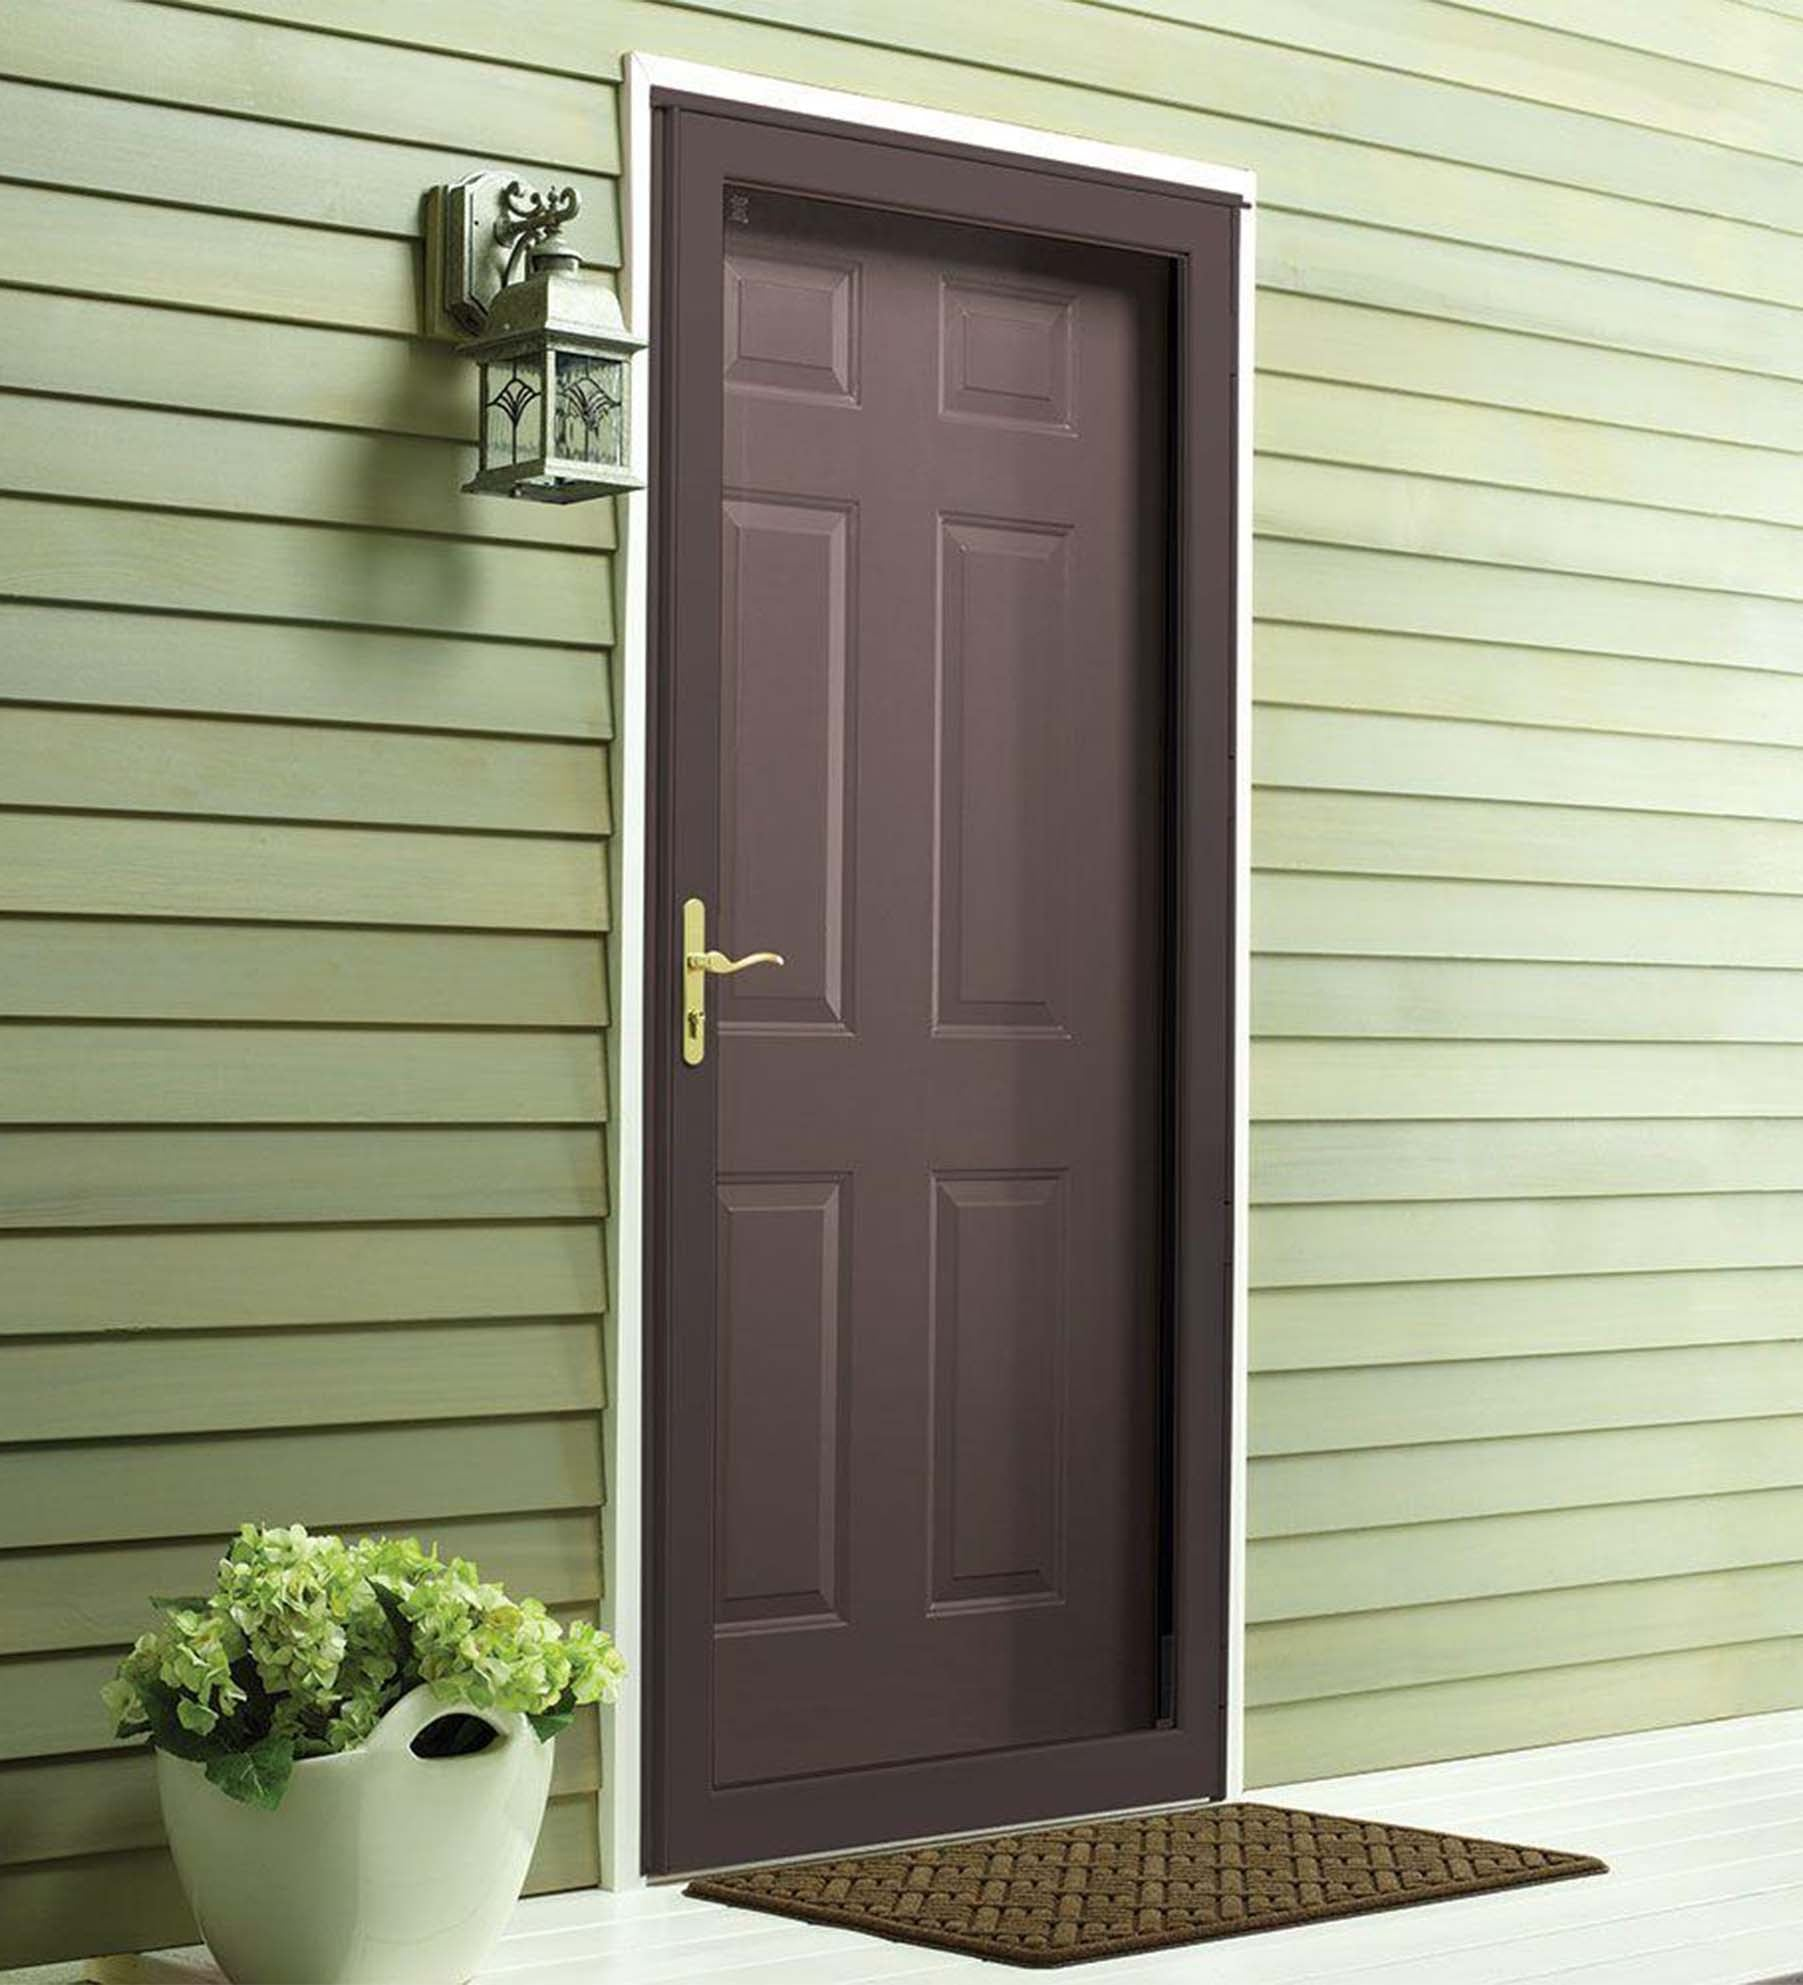 INSTALLED Larson Full View Engineered Storm Door w/ Hardware STARTING $649